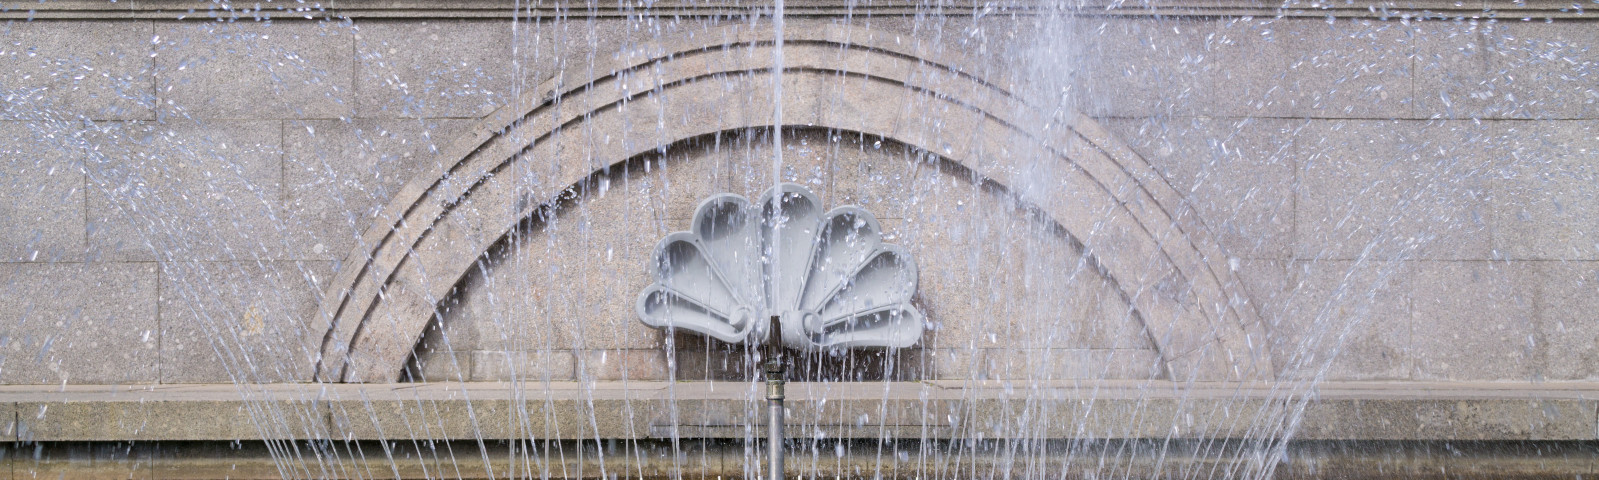 Fountain-Web-Header-e1455825239374.jpg